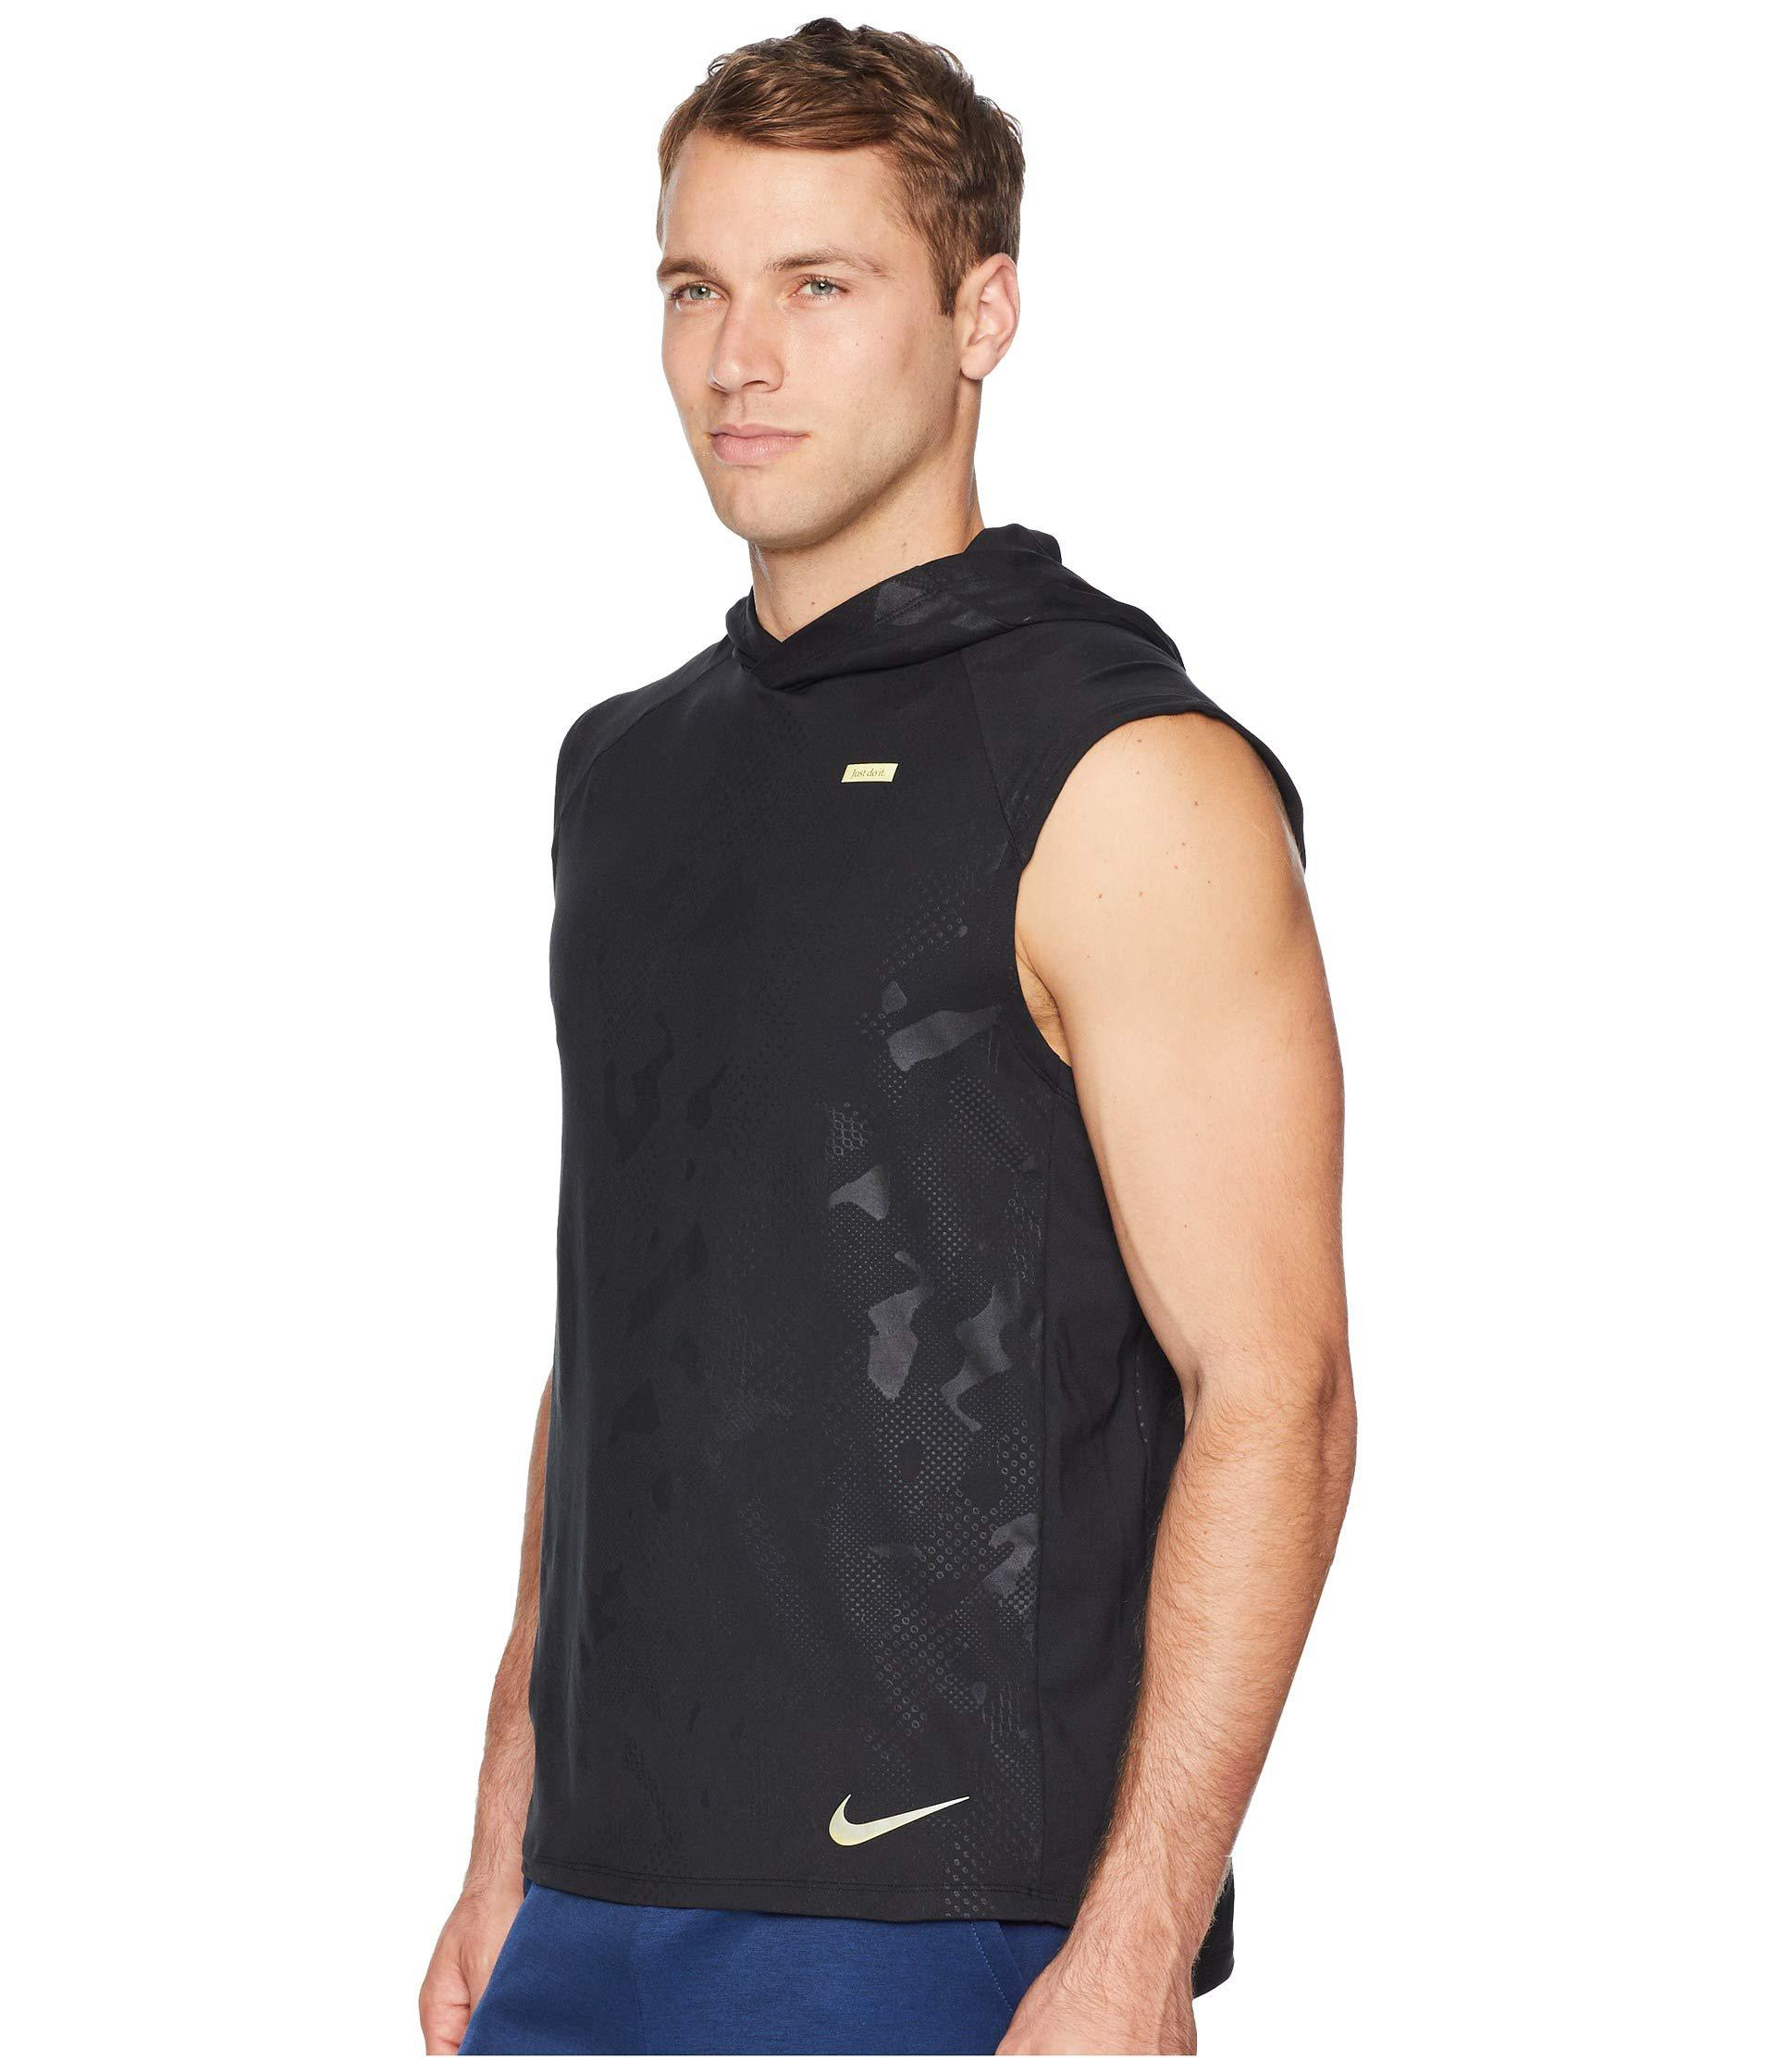 af1cfcf33a876 Lyst - Nike Element Sleeve Hoodie Gx in Black for Men - Save 19%